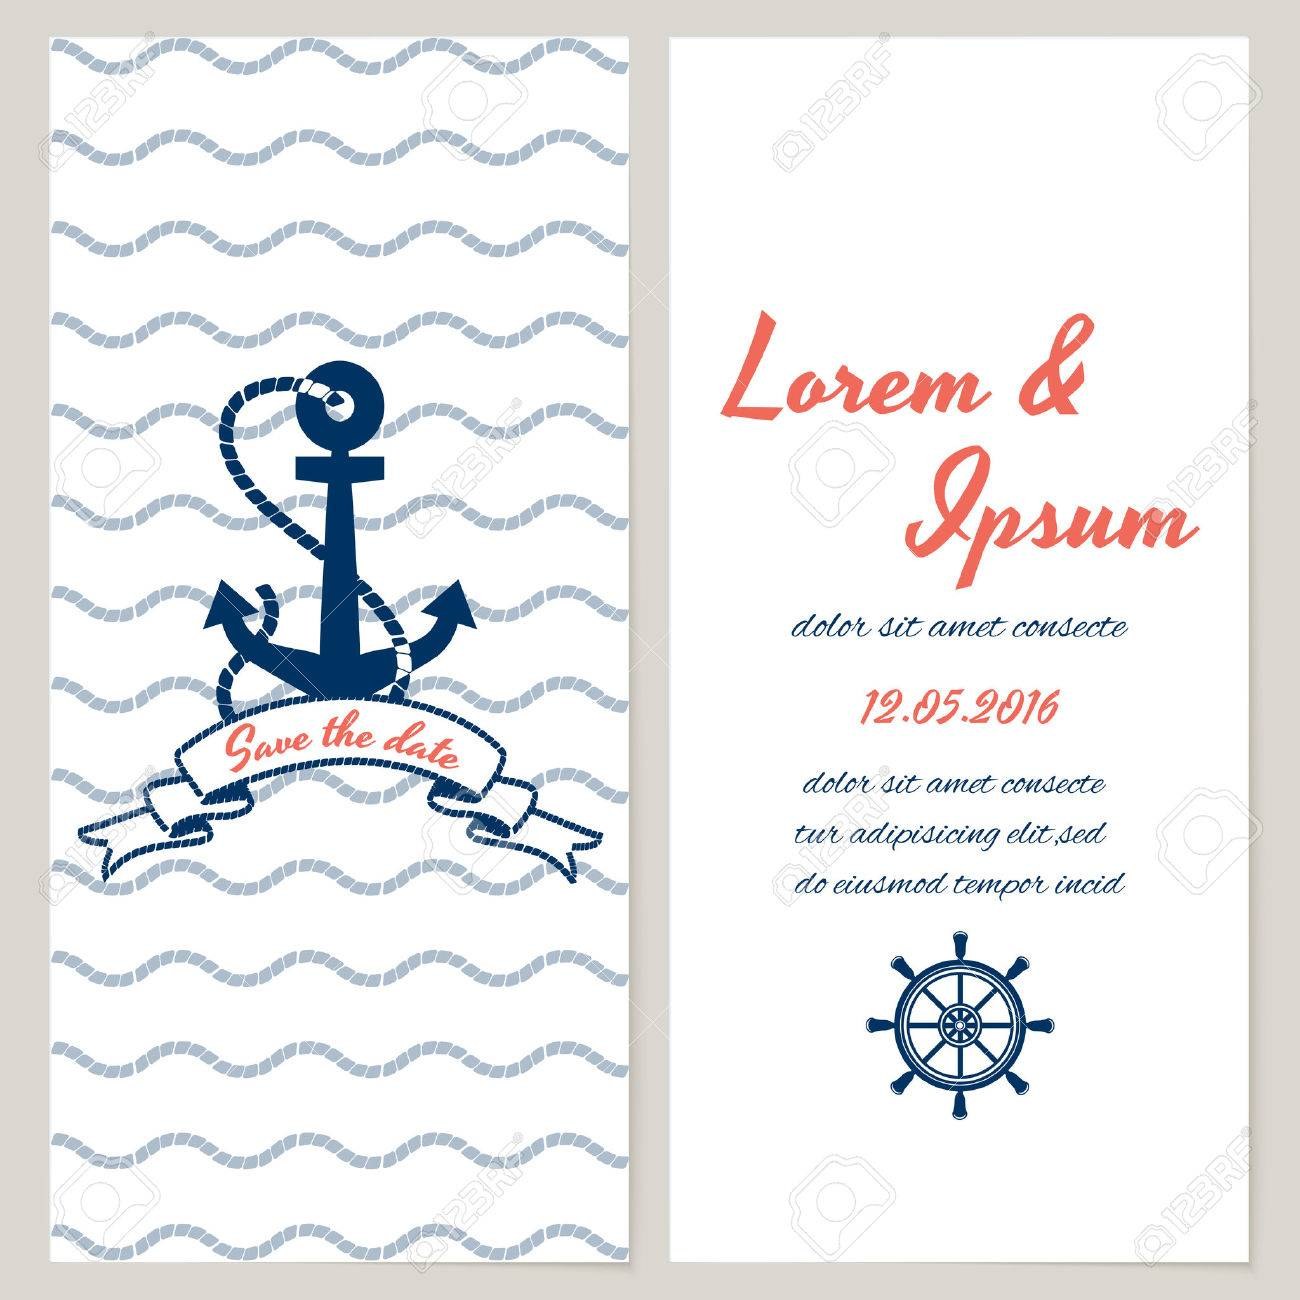 Nautical Style Wedding Invitation And Save The Date Templates With  Copyspace For Your Text Rope Borders